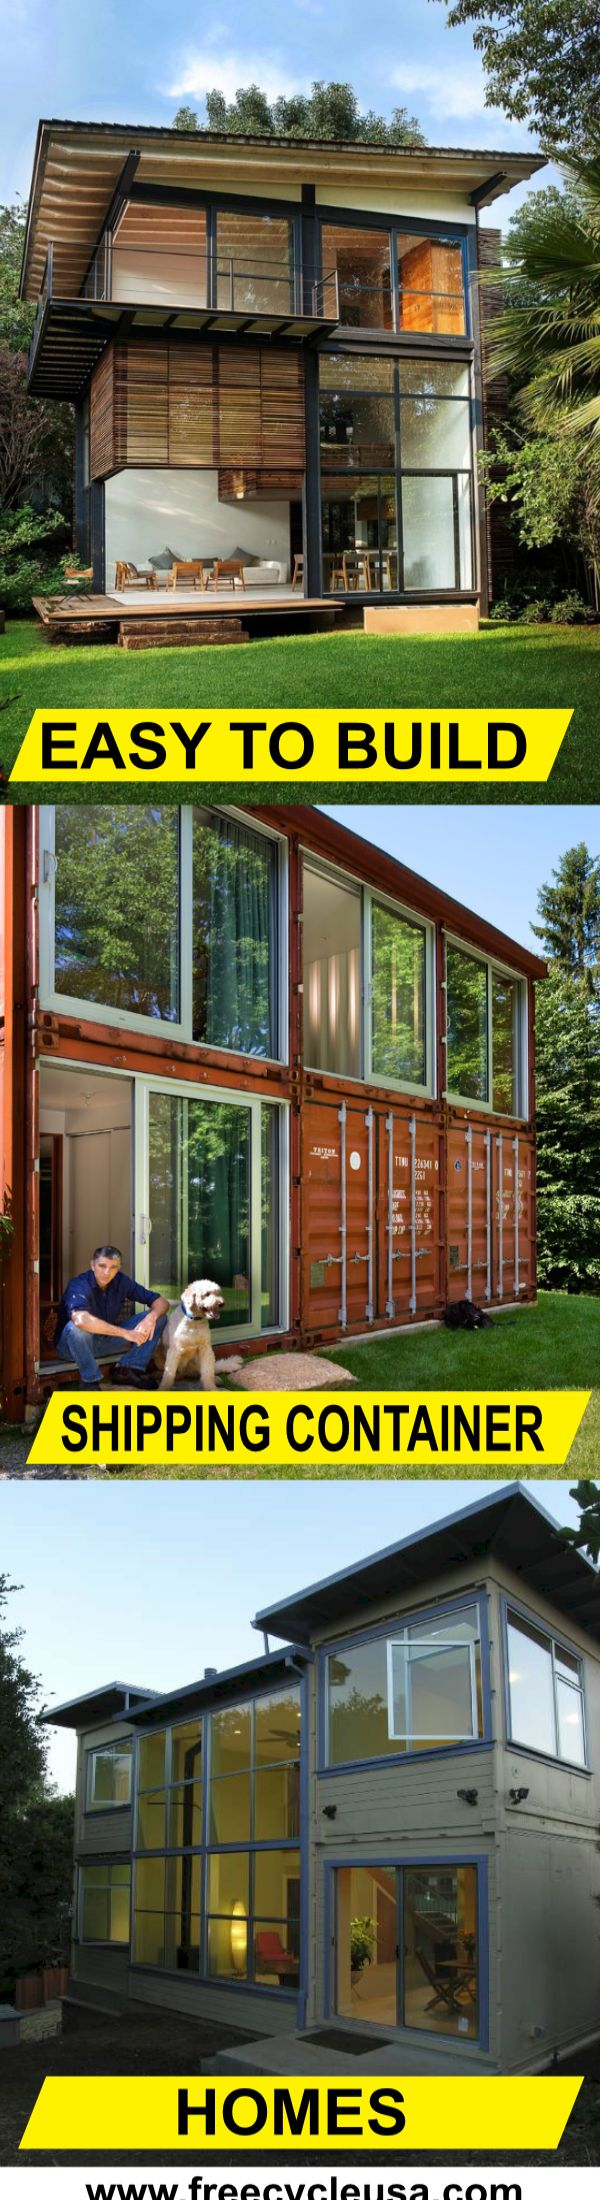 Shipping container homes living for the future earth911 com - Shipping Container Homes Living For The Future Earth911 Com Shipping Container Homes Living For The